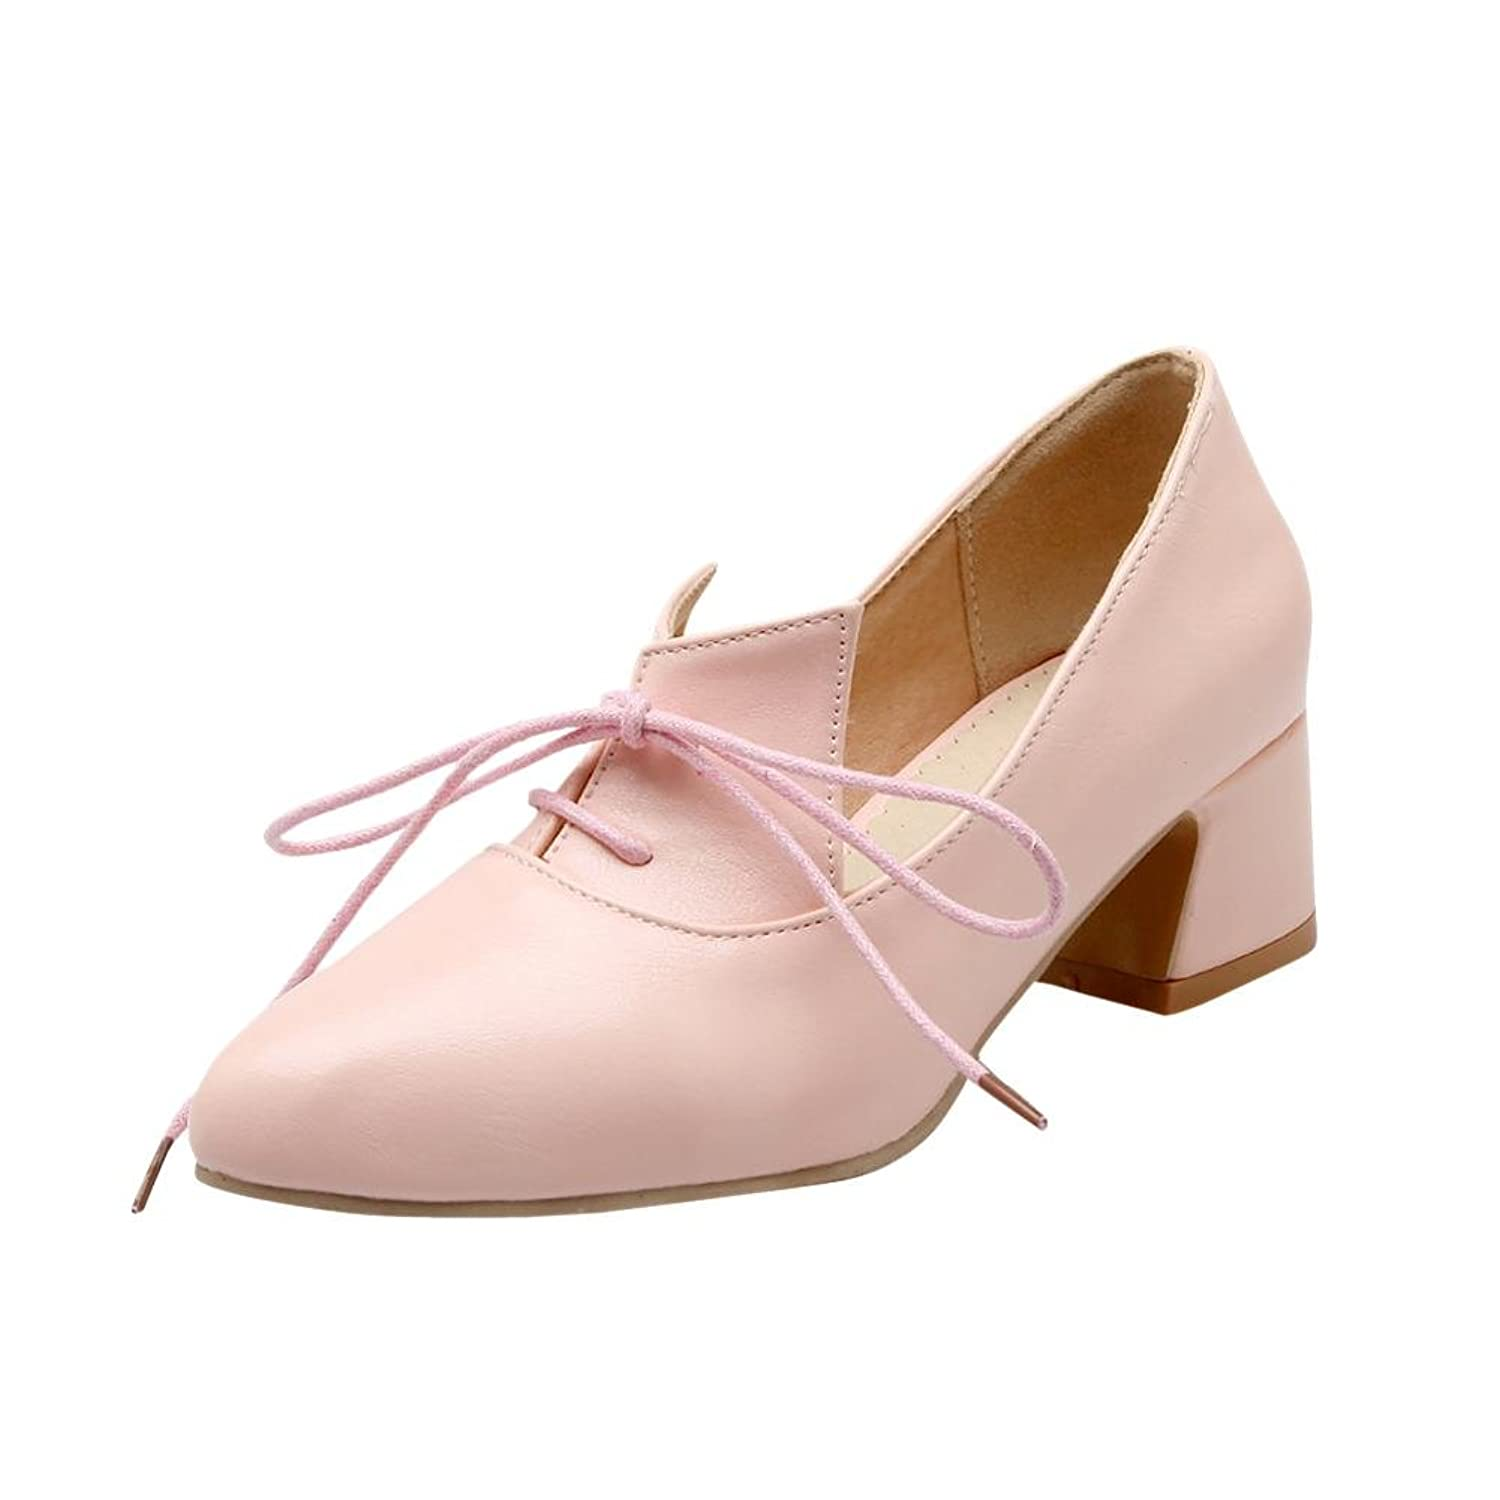 delicate Latasa Women's Fashion Solid Color Pointed-toe Lace-up Mid Heel Chunky Oxford Shoes